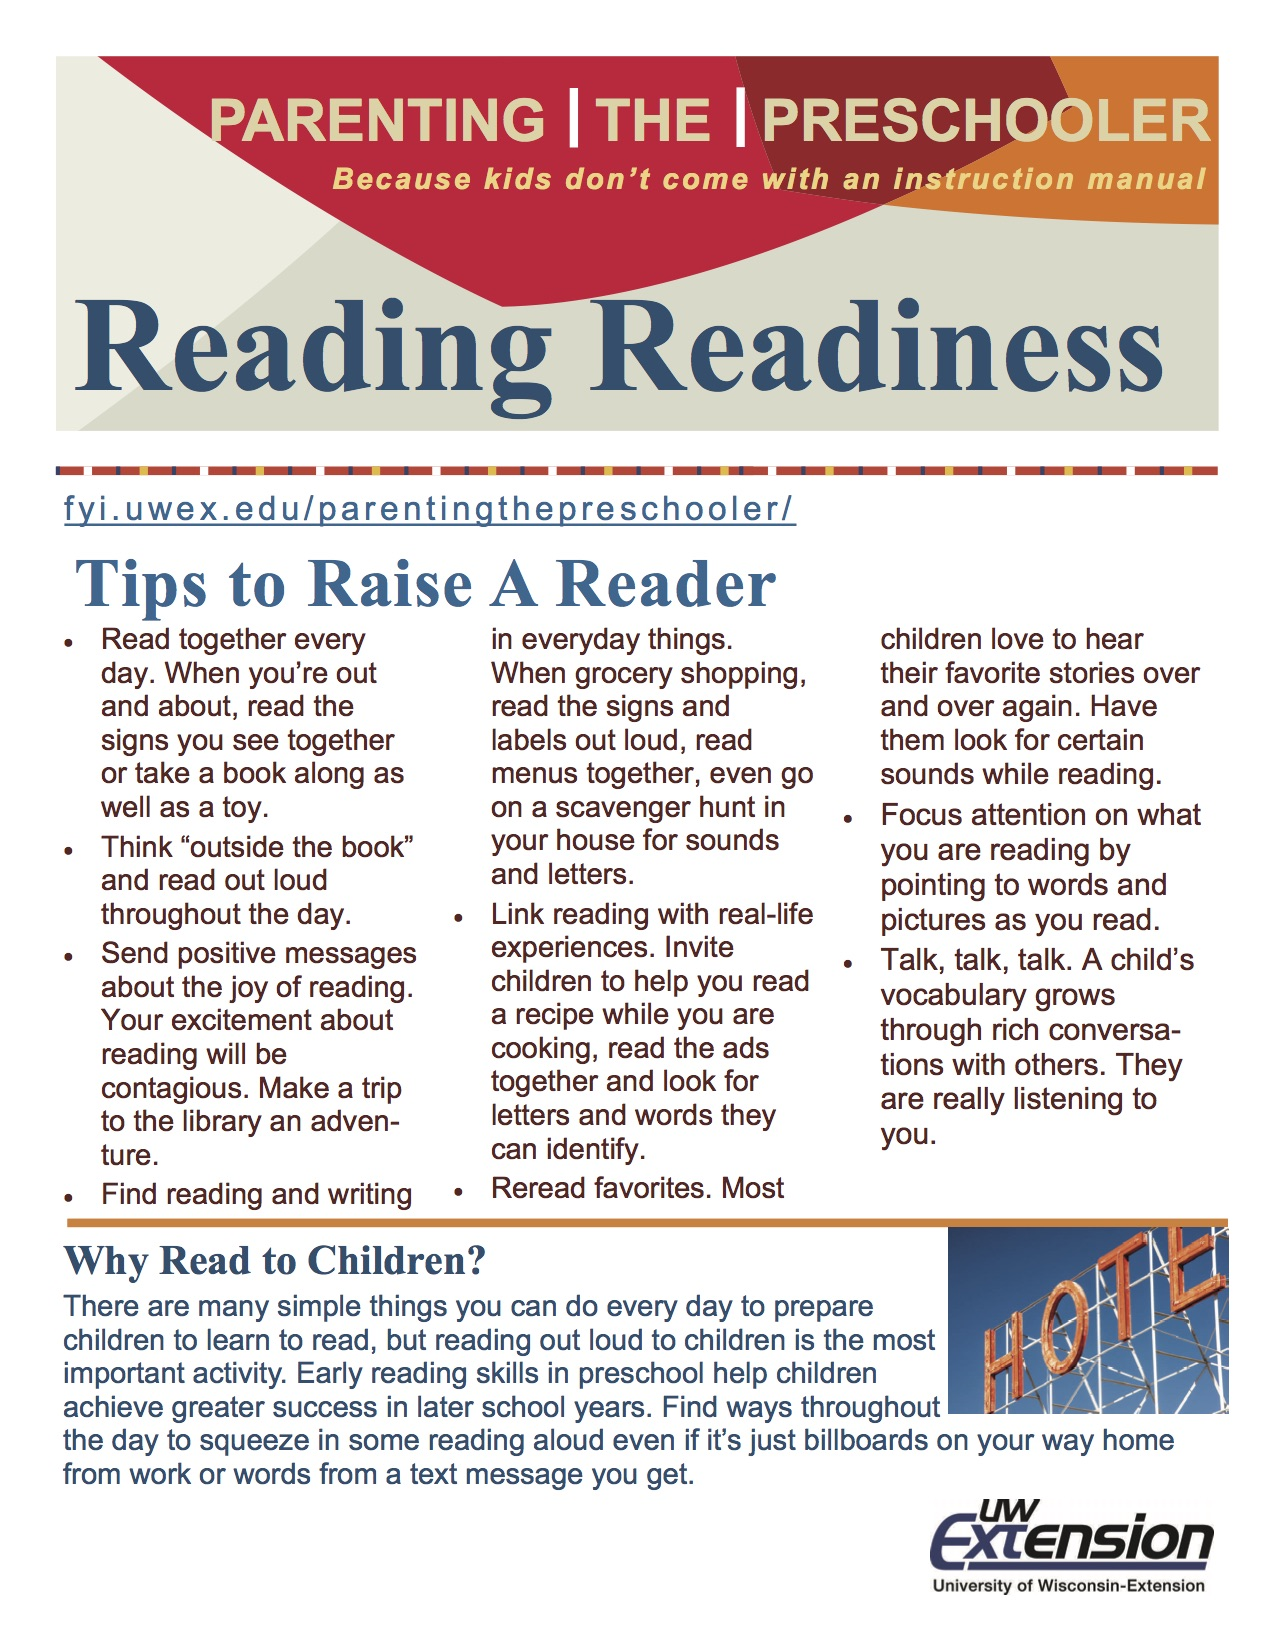 PtP Reading Readiness1